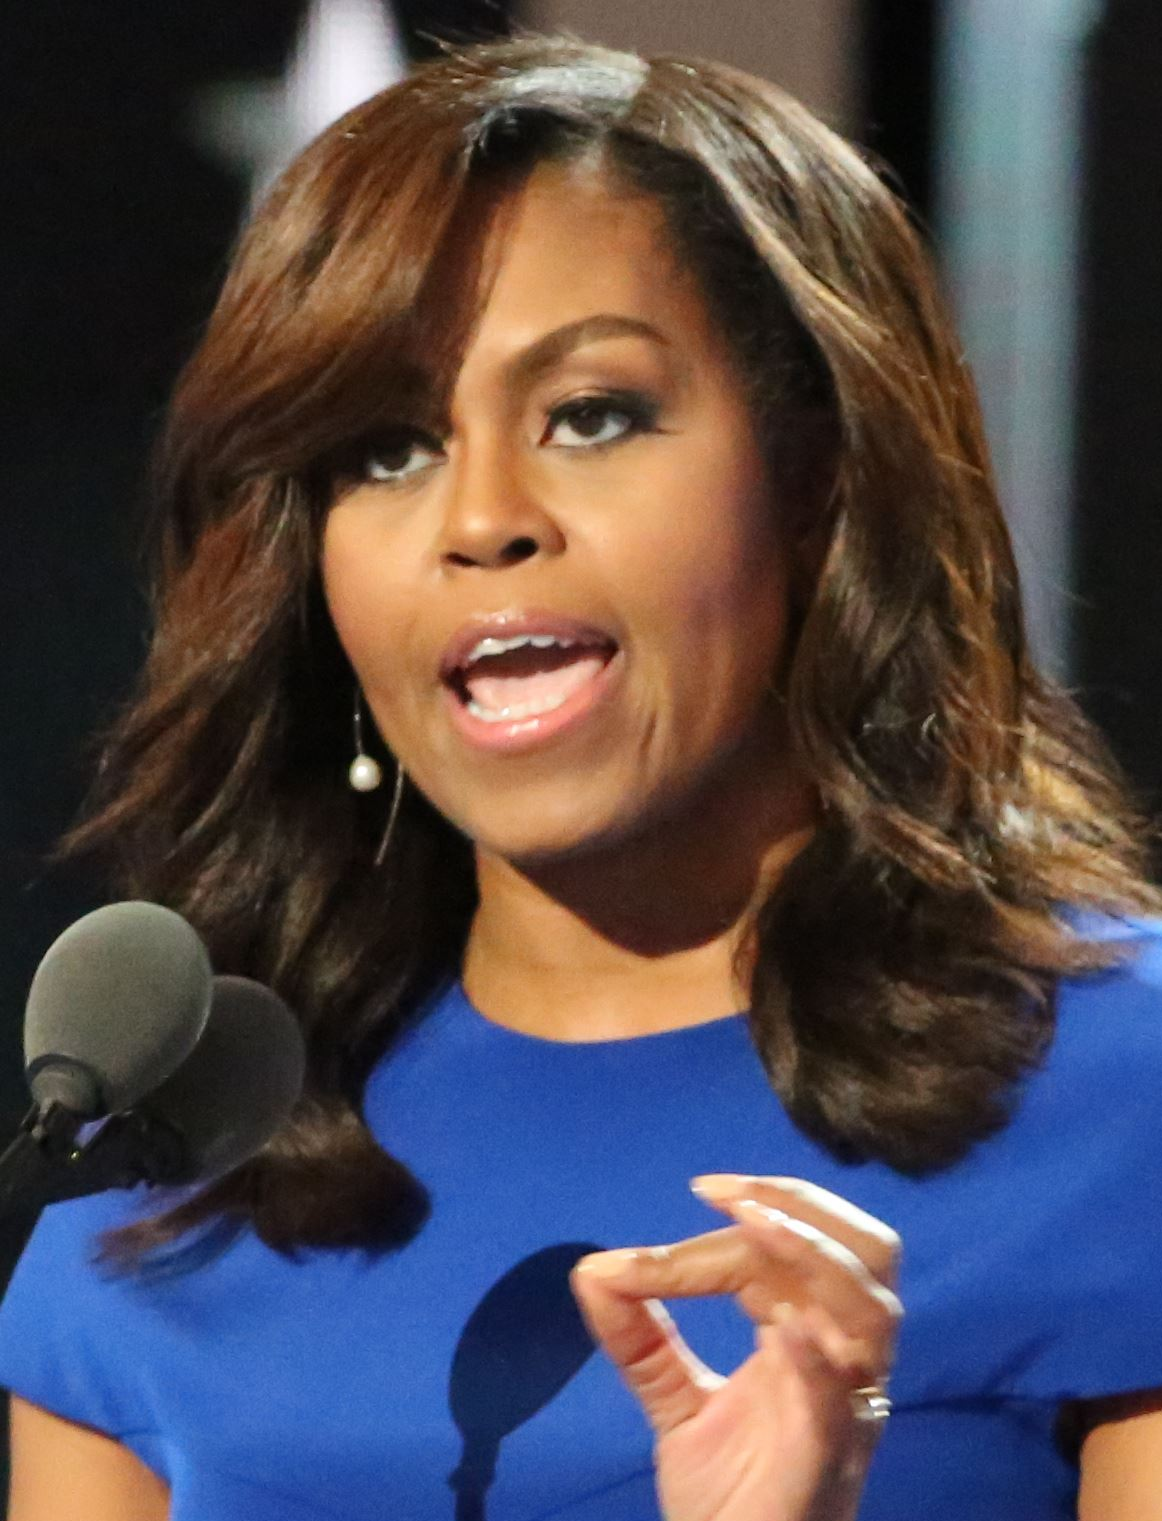 michelle_obama_at_the_dnc_july_2016_cropped